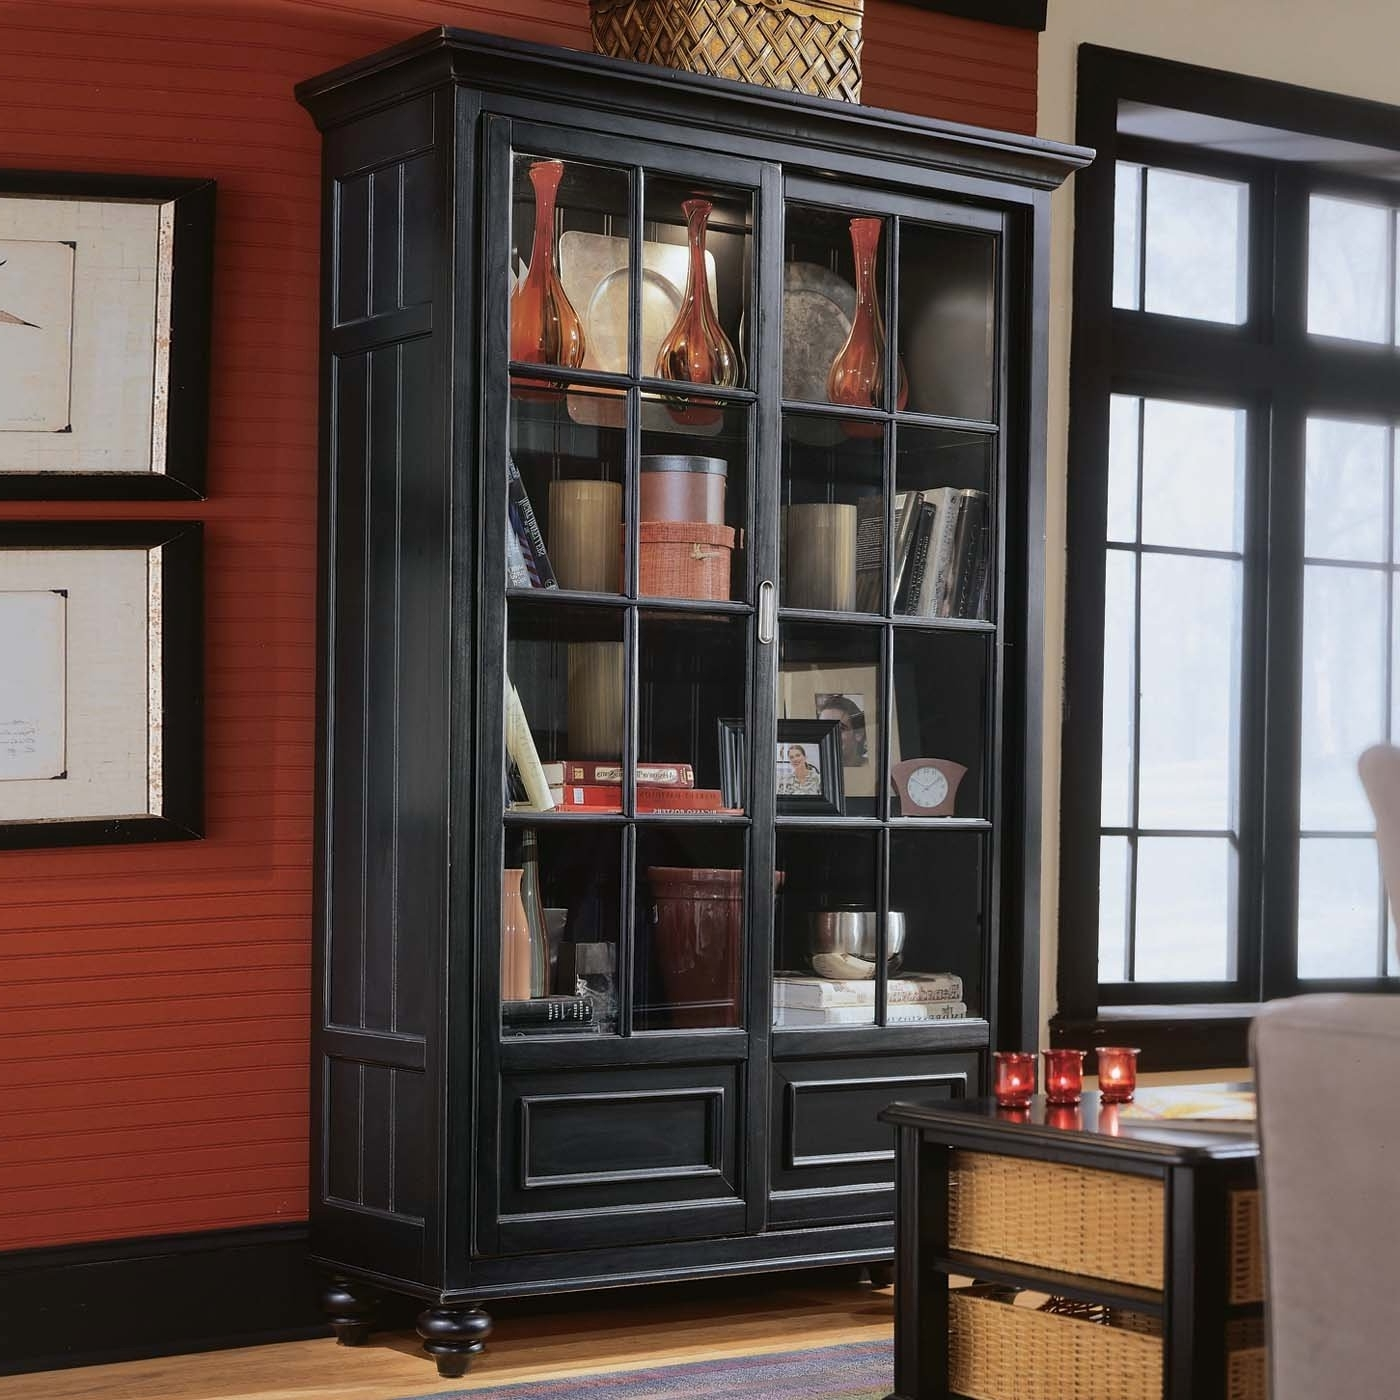 Well Known Black Bookcases With Glass Doors With Regard To Tall Black Wood Bookshelf With Glass Sliding Doors On Red Wall (View 2 of 15)